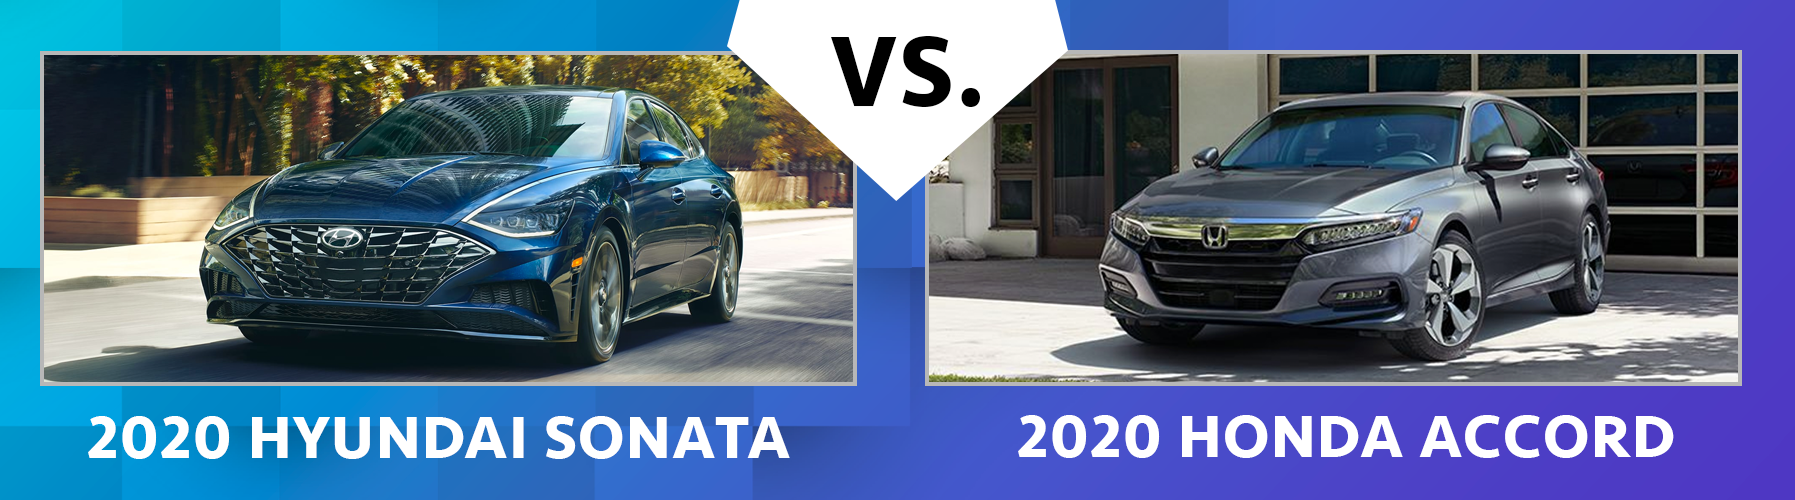 W2020 Hyundai Sonata vs 2020 Honda Accord Comparisons